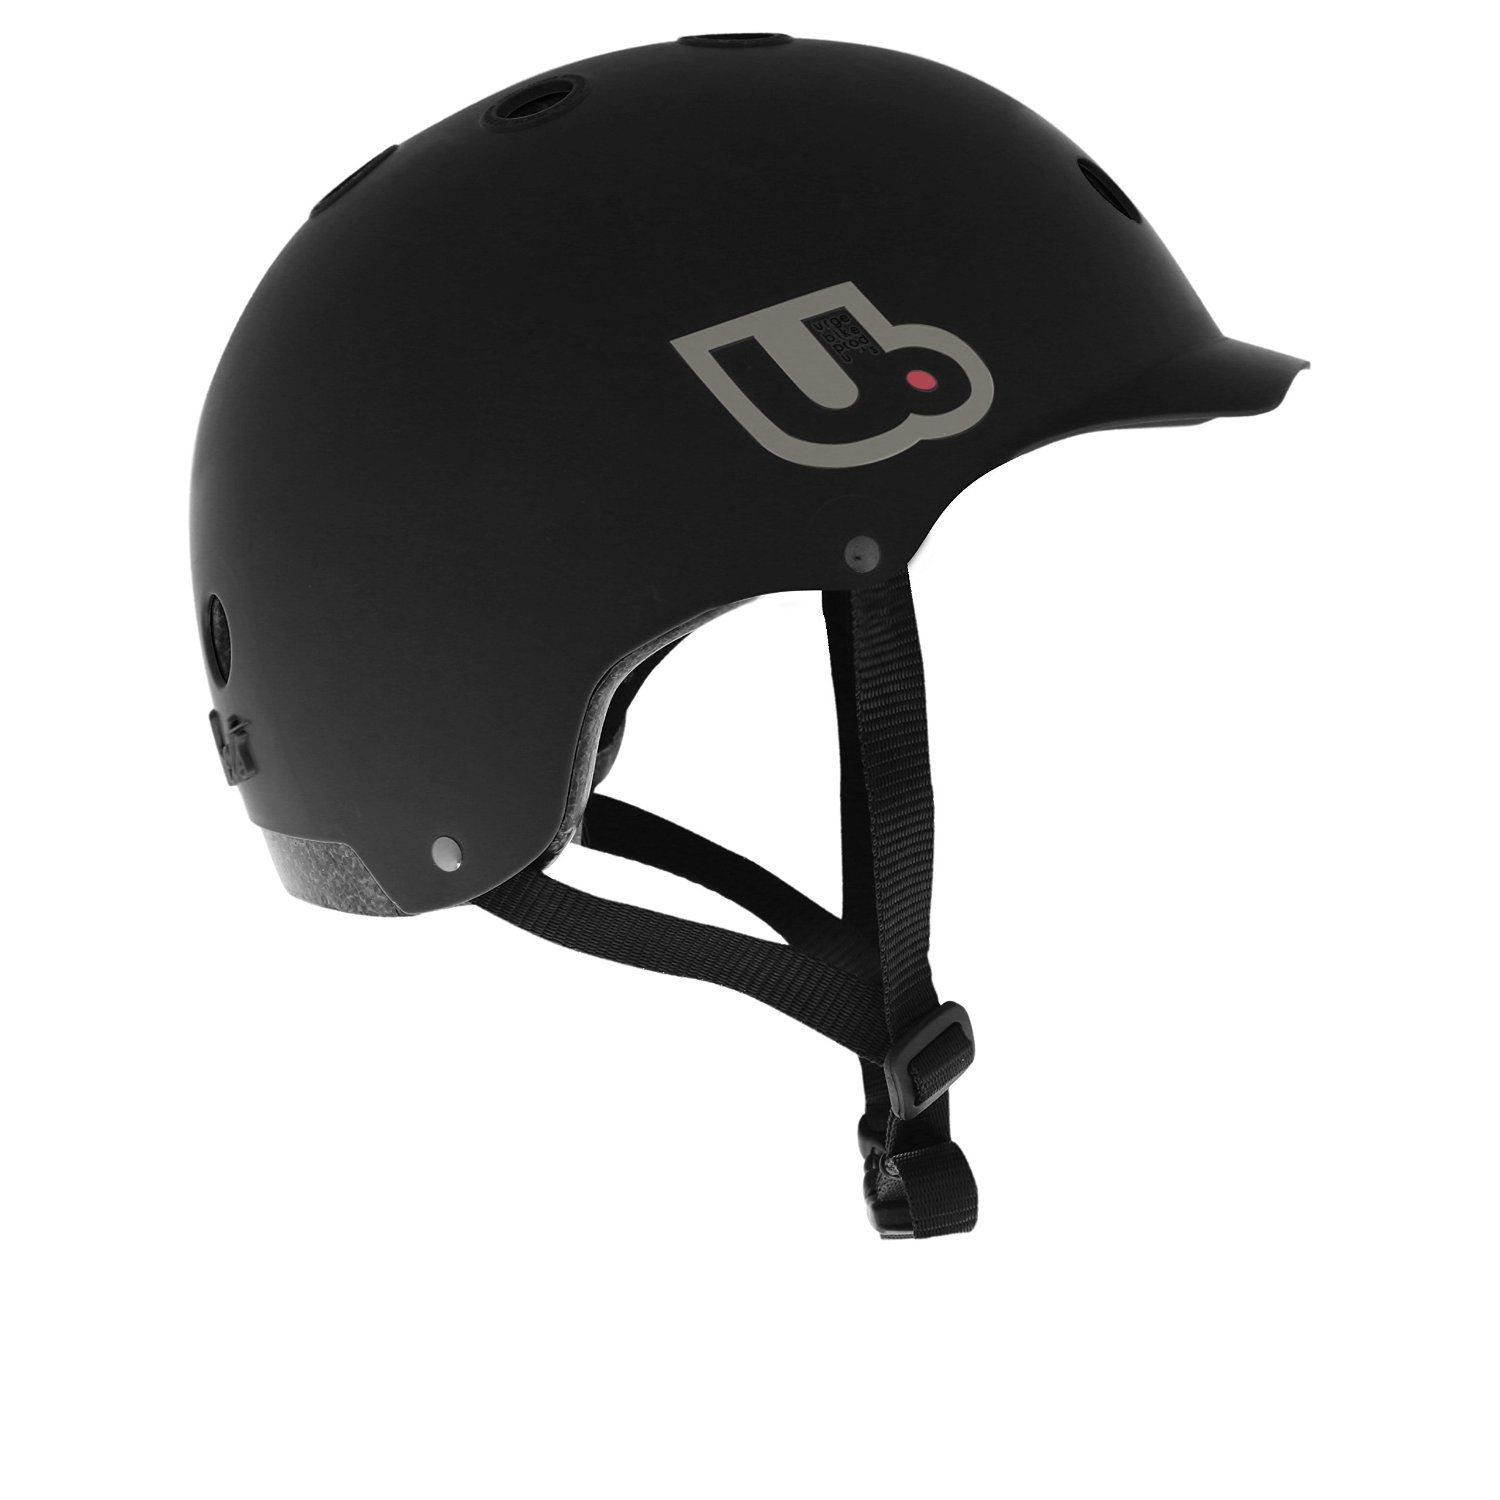 Black Urge Bike Products Bicycle Helmets